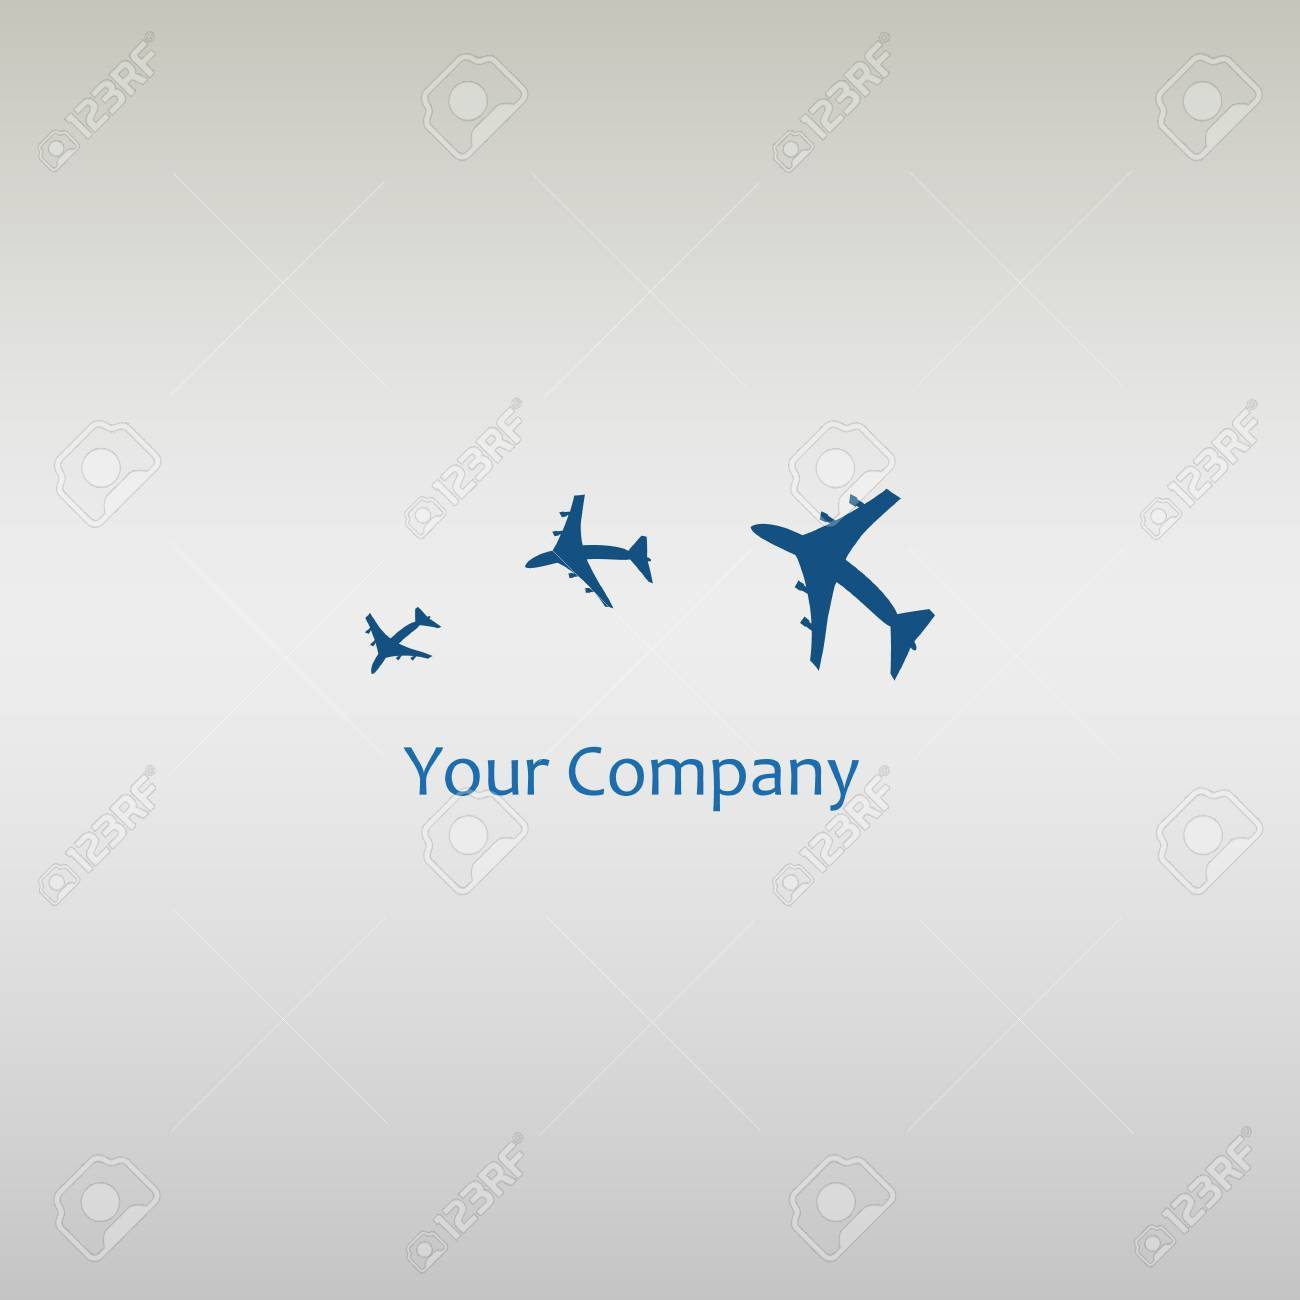 Plane Logo Design Creative Vector Icon With Plane Royalty Free Cliparts Vectors And Stock Illustration Image 44427969